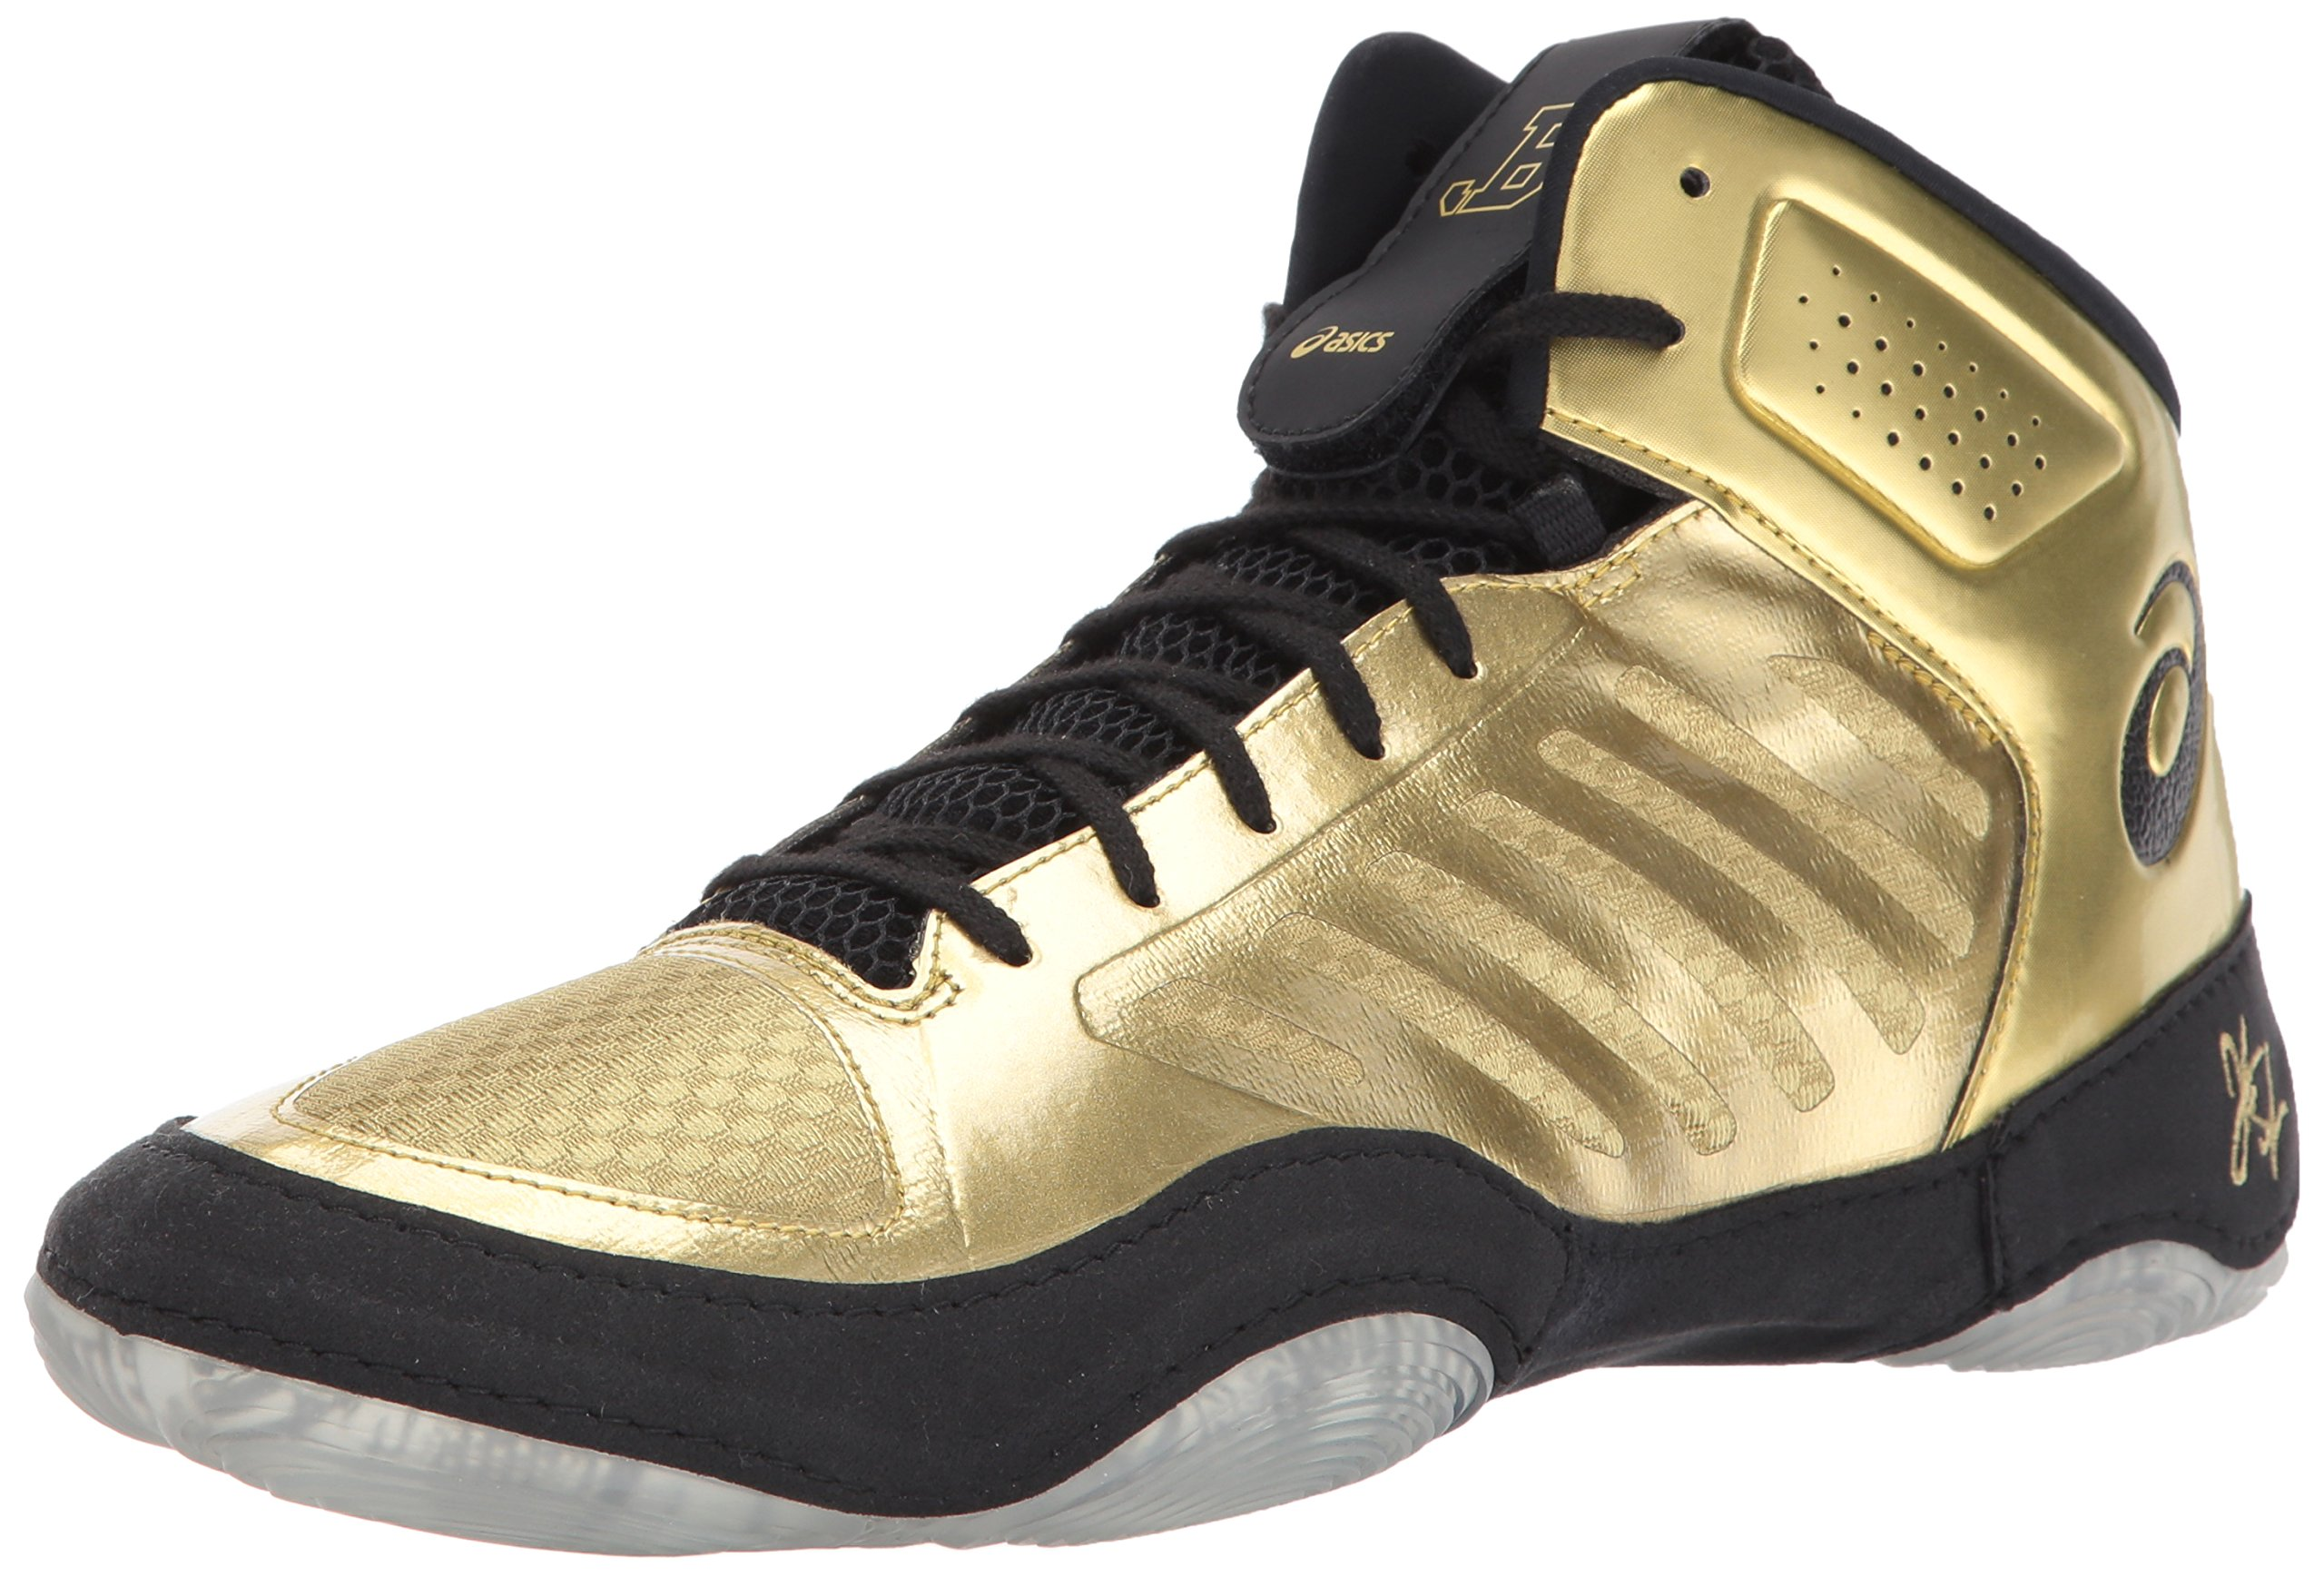 ASICS Men's JB Elite III Wrestling Shoe, Rich Gold/Black, 13 Medium US